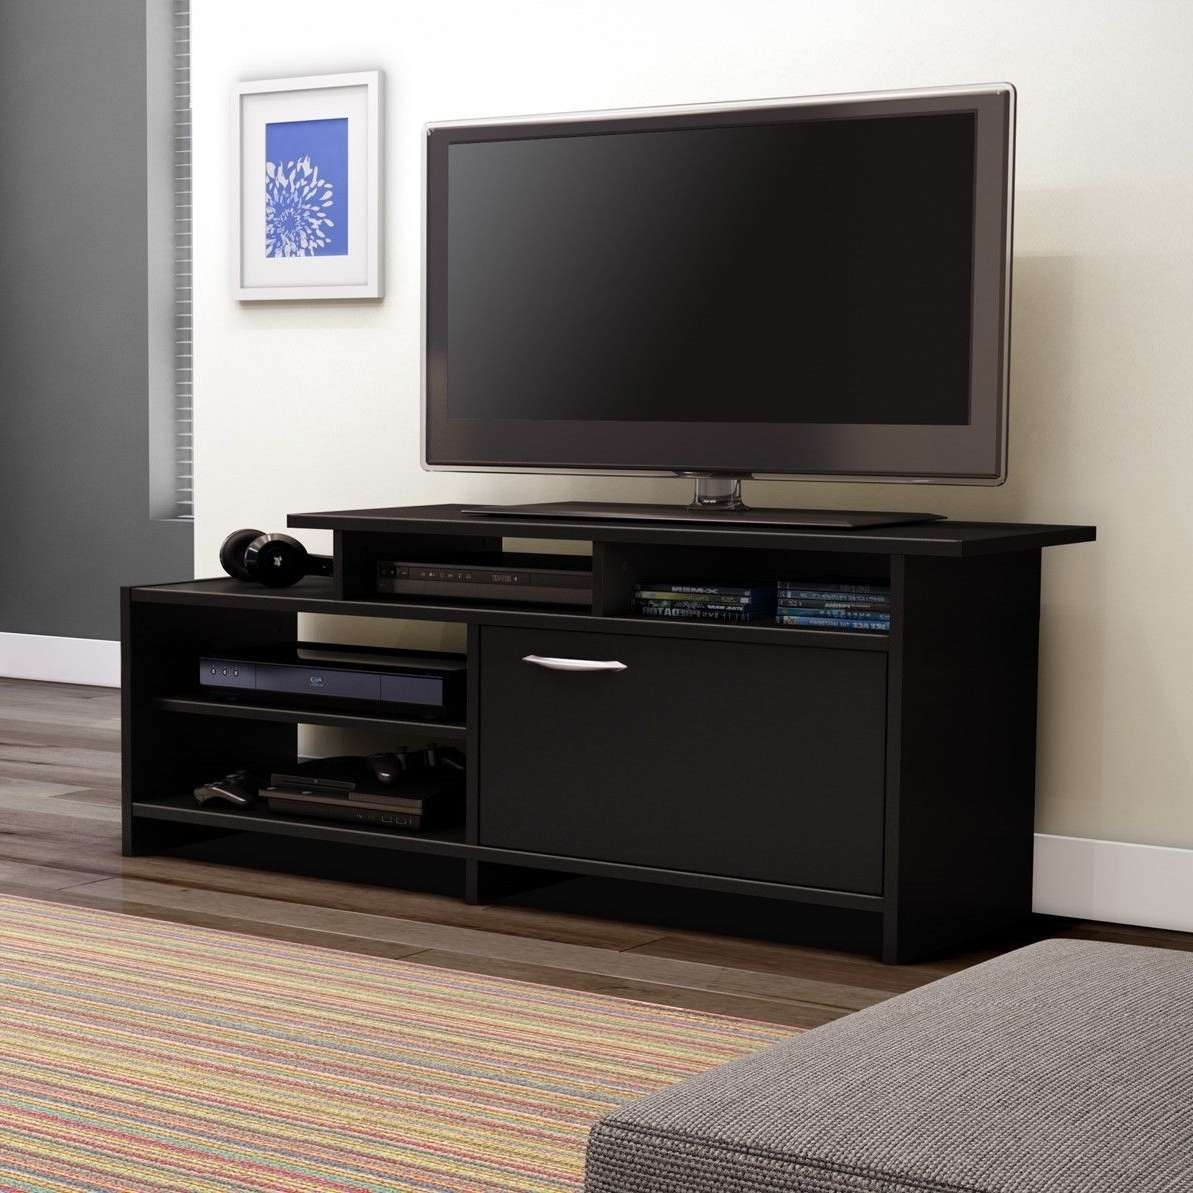 Black Solid Wood Console Table For Tv Stand Having Cabinet Storage Intended For Modern Low Tv Stands (View 16 of 20)